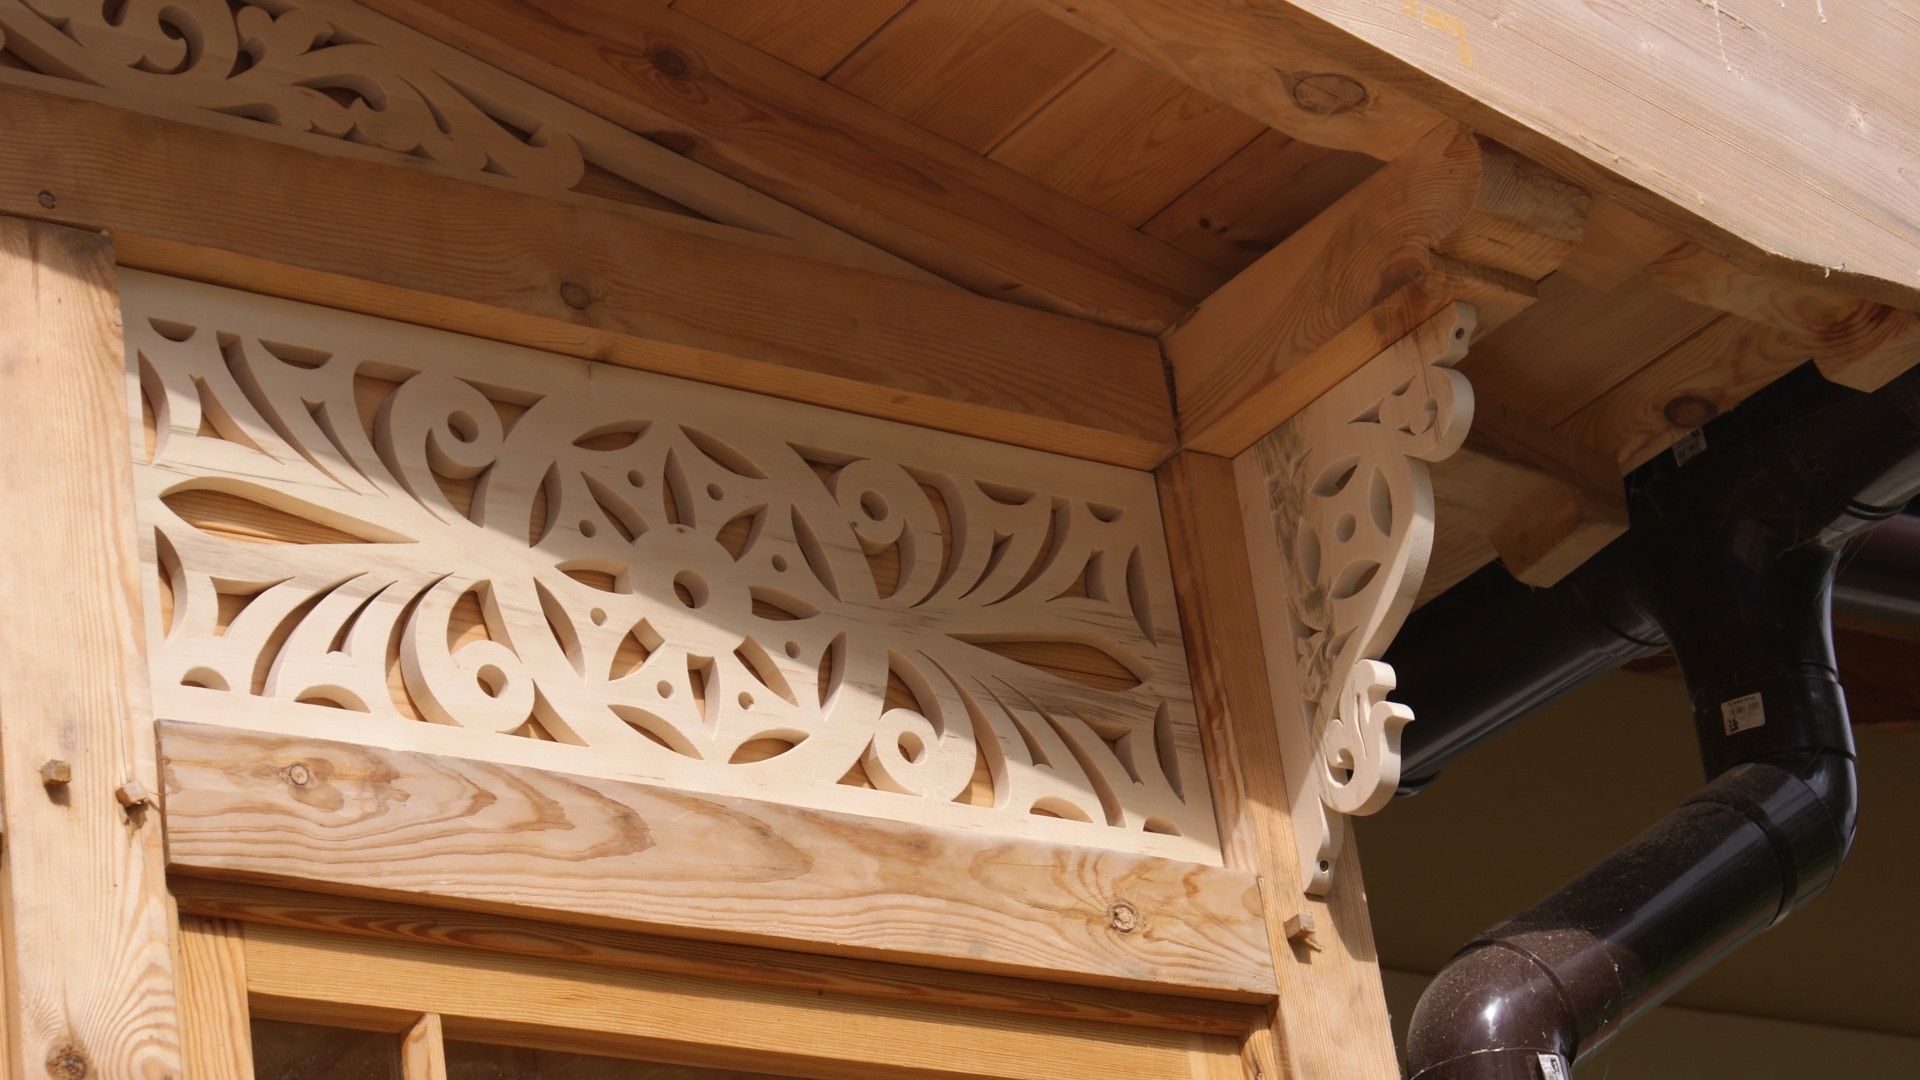 realization in mostkowo - decorative lace in a new porch